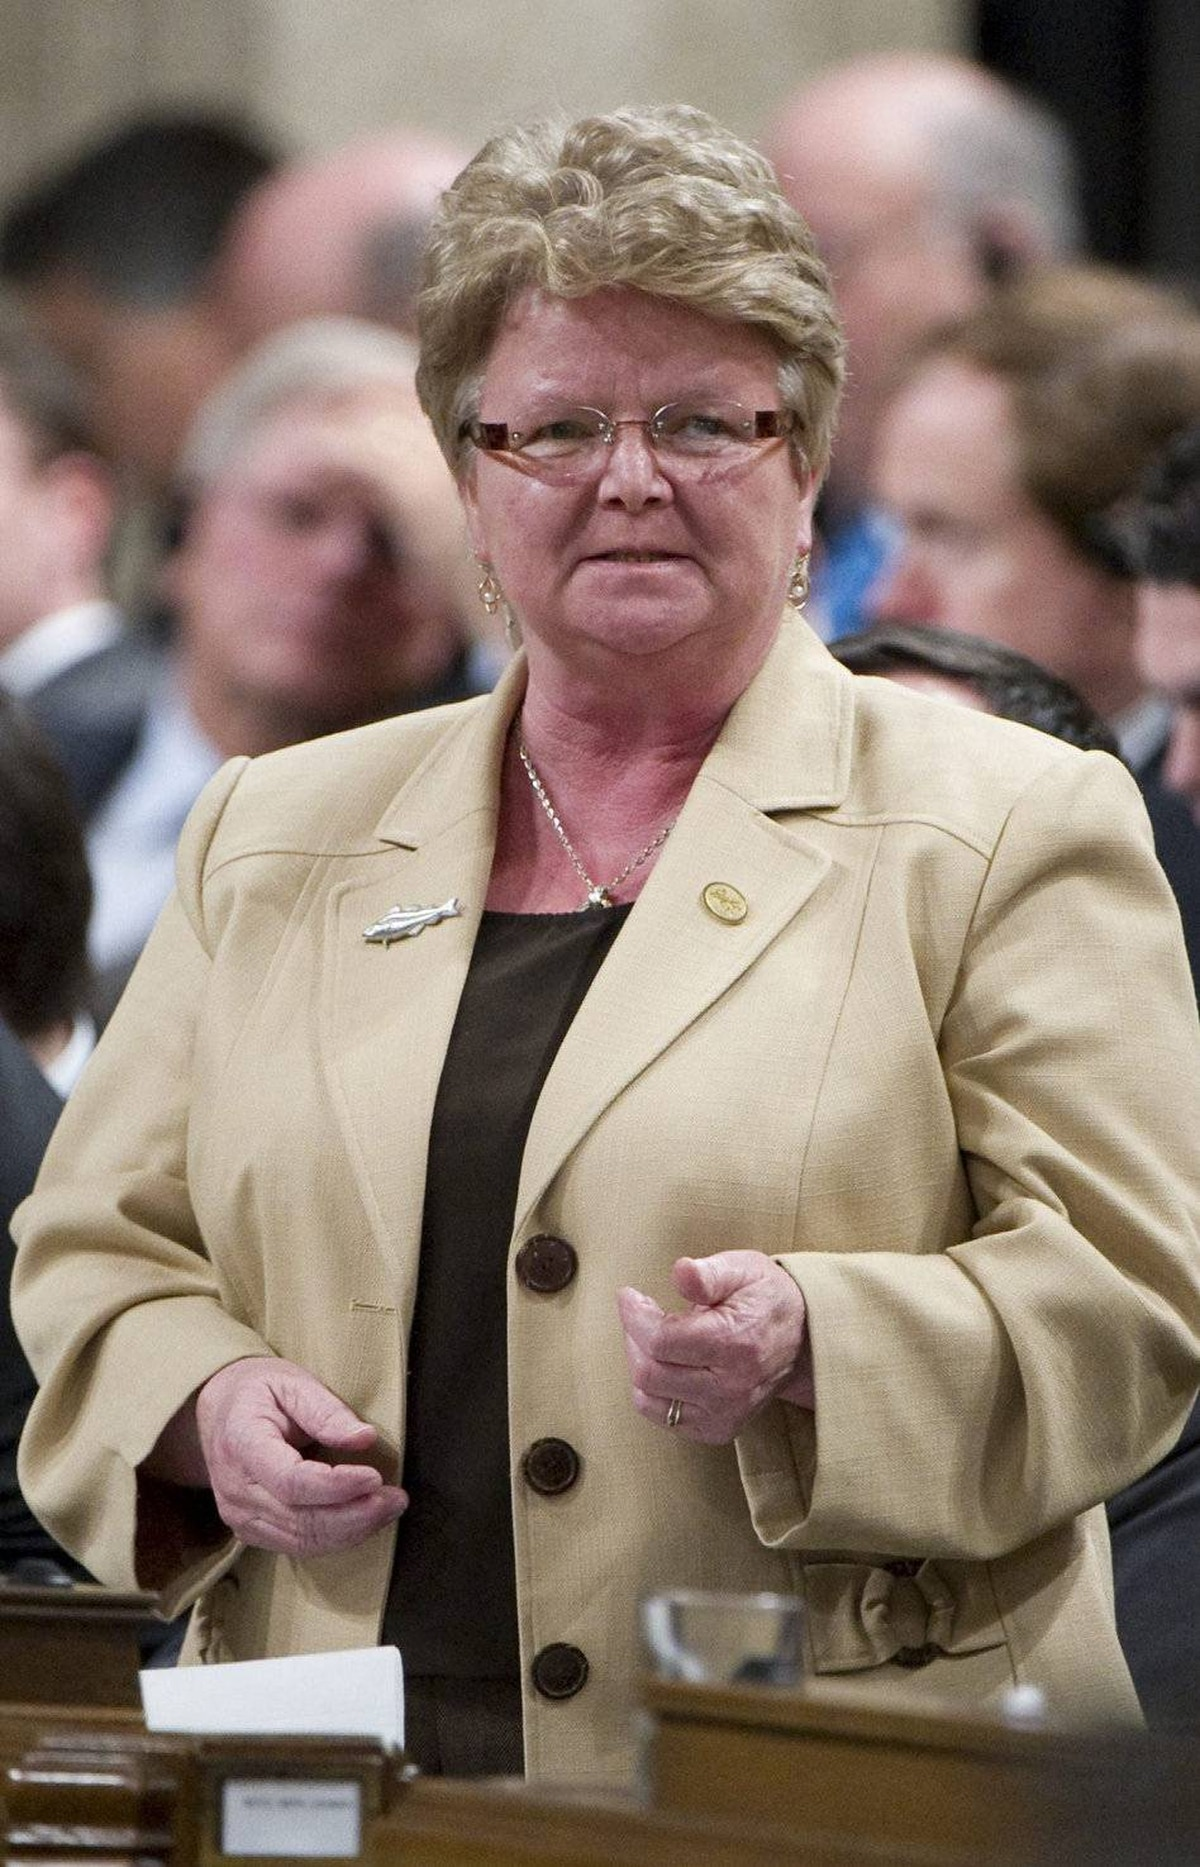 GAIL SHEA To Revenue from Fisheries. The PEI MP was first elected in 2008 and is a former provincial cabinet minister.